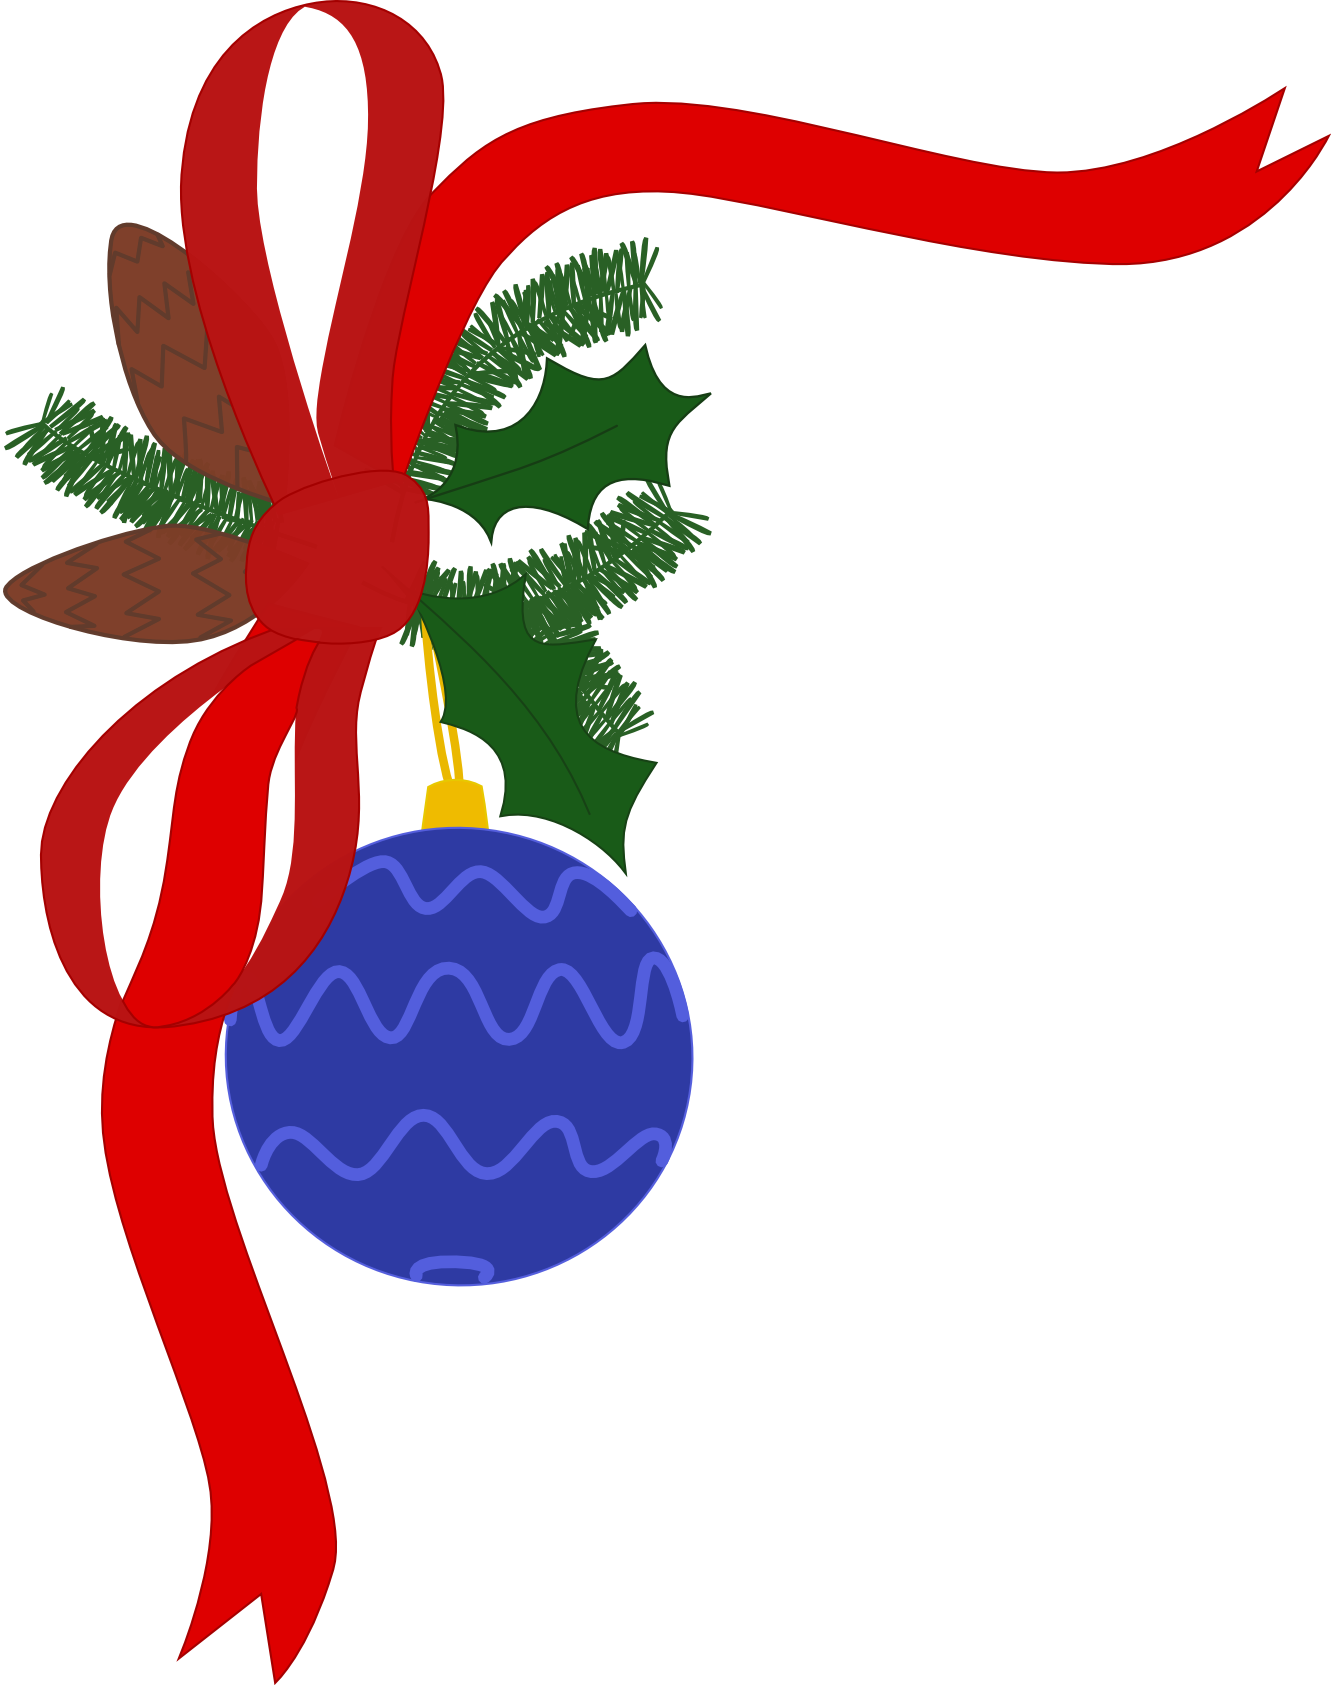 Christmas decorations clipart clipart best for Decoration clips